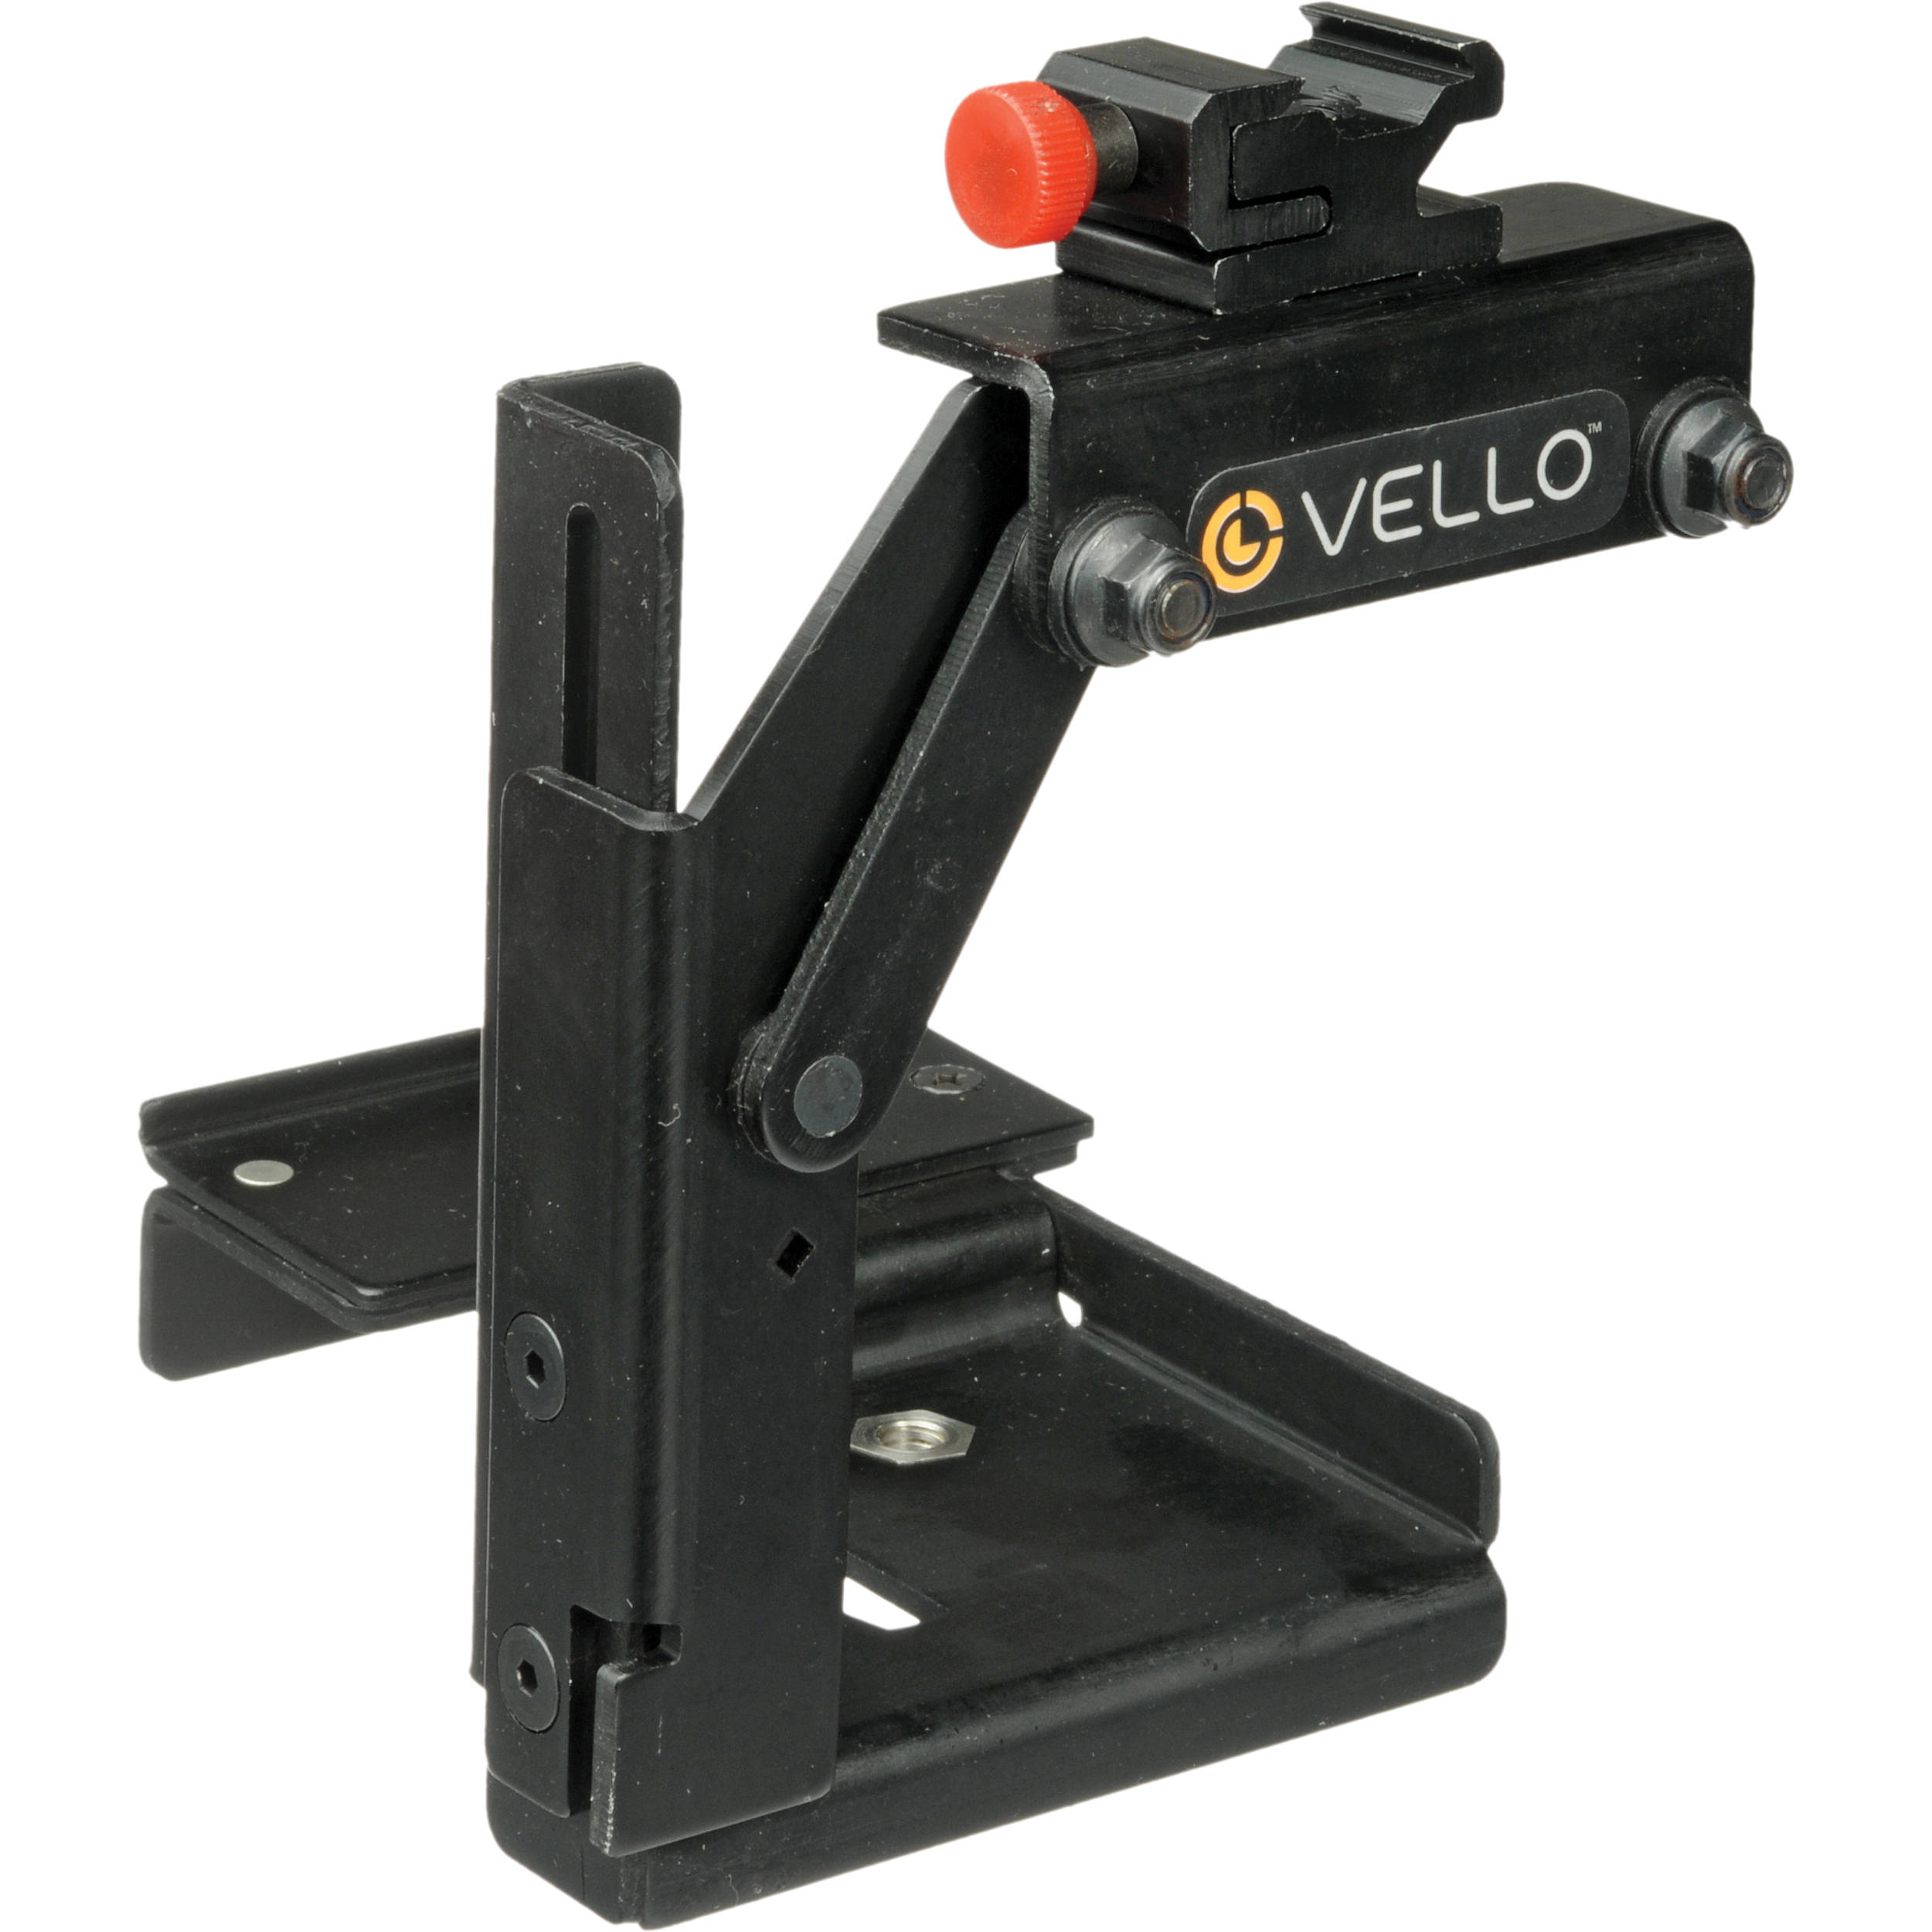 Photography Flash Brackets: Vello Quickshot Rotating Flash Bracket CB-300 B&H Photo Video